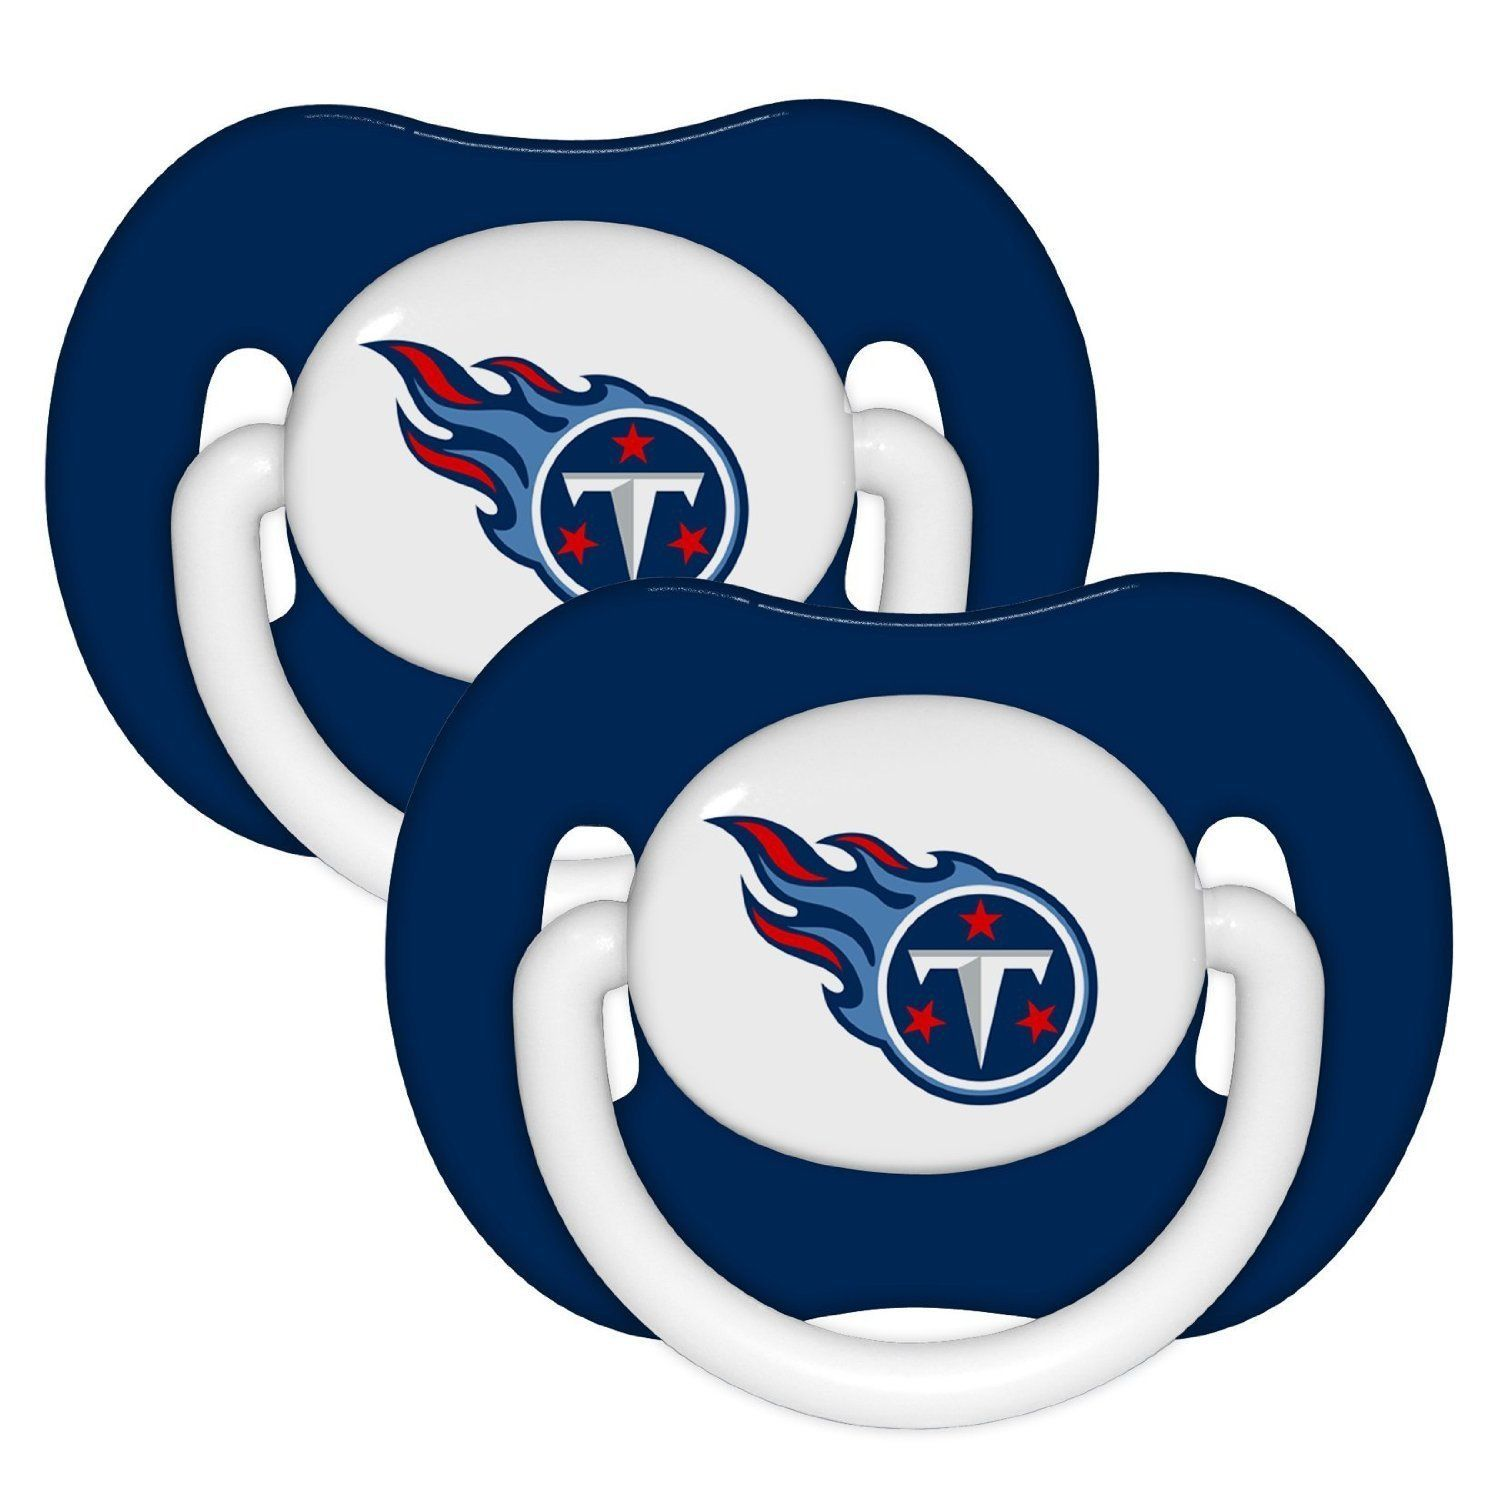 TENNESSEE TITANS 2-PACK BABY INFANT ORTHODONTIC PACIFIER SET NFL FOOTBALL